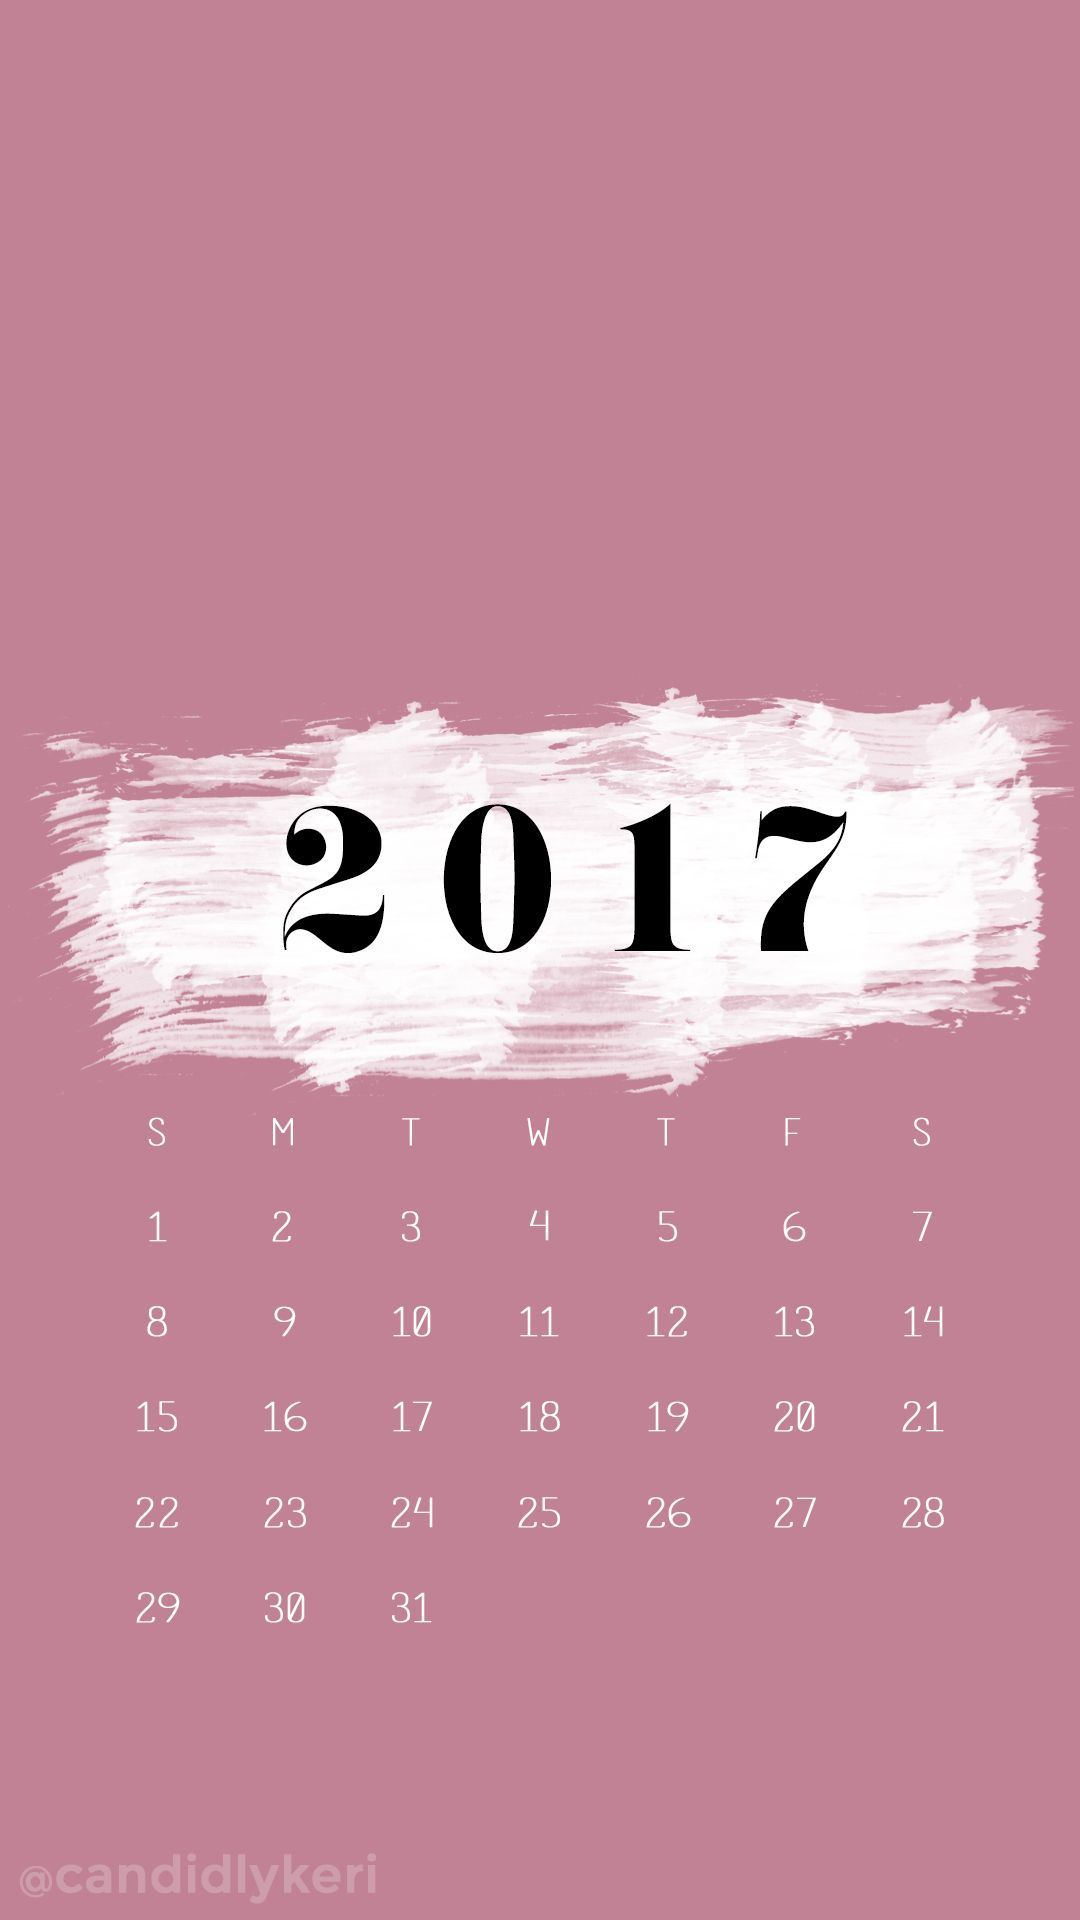 November Calendar Wallpaper For Iphone : Pink and white paint strokes january calendar